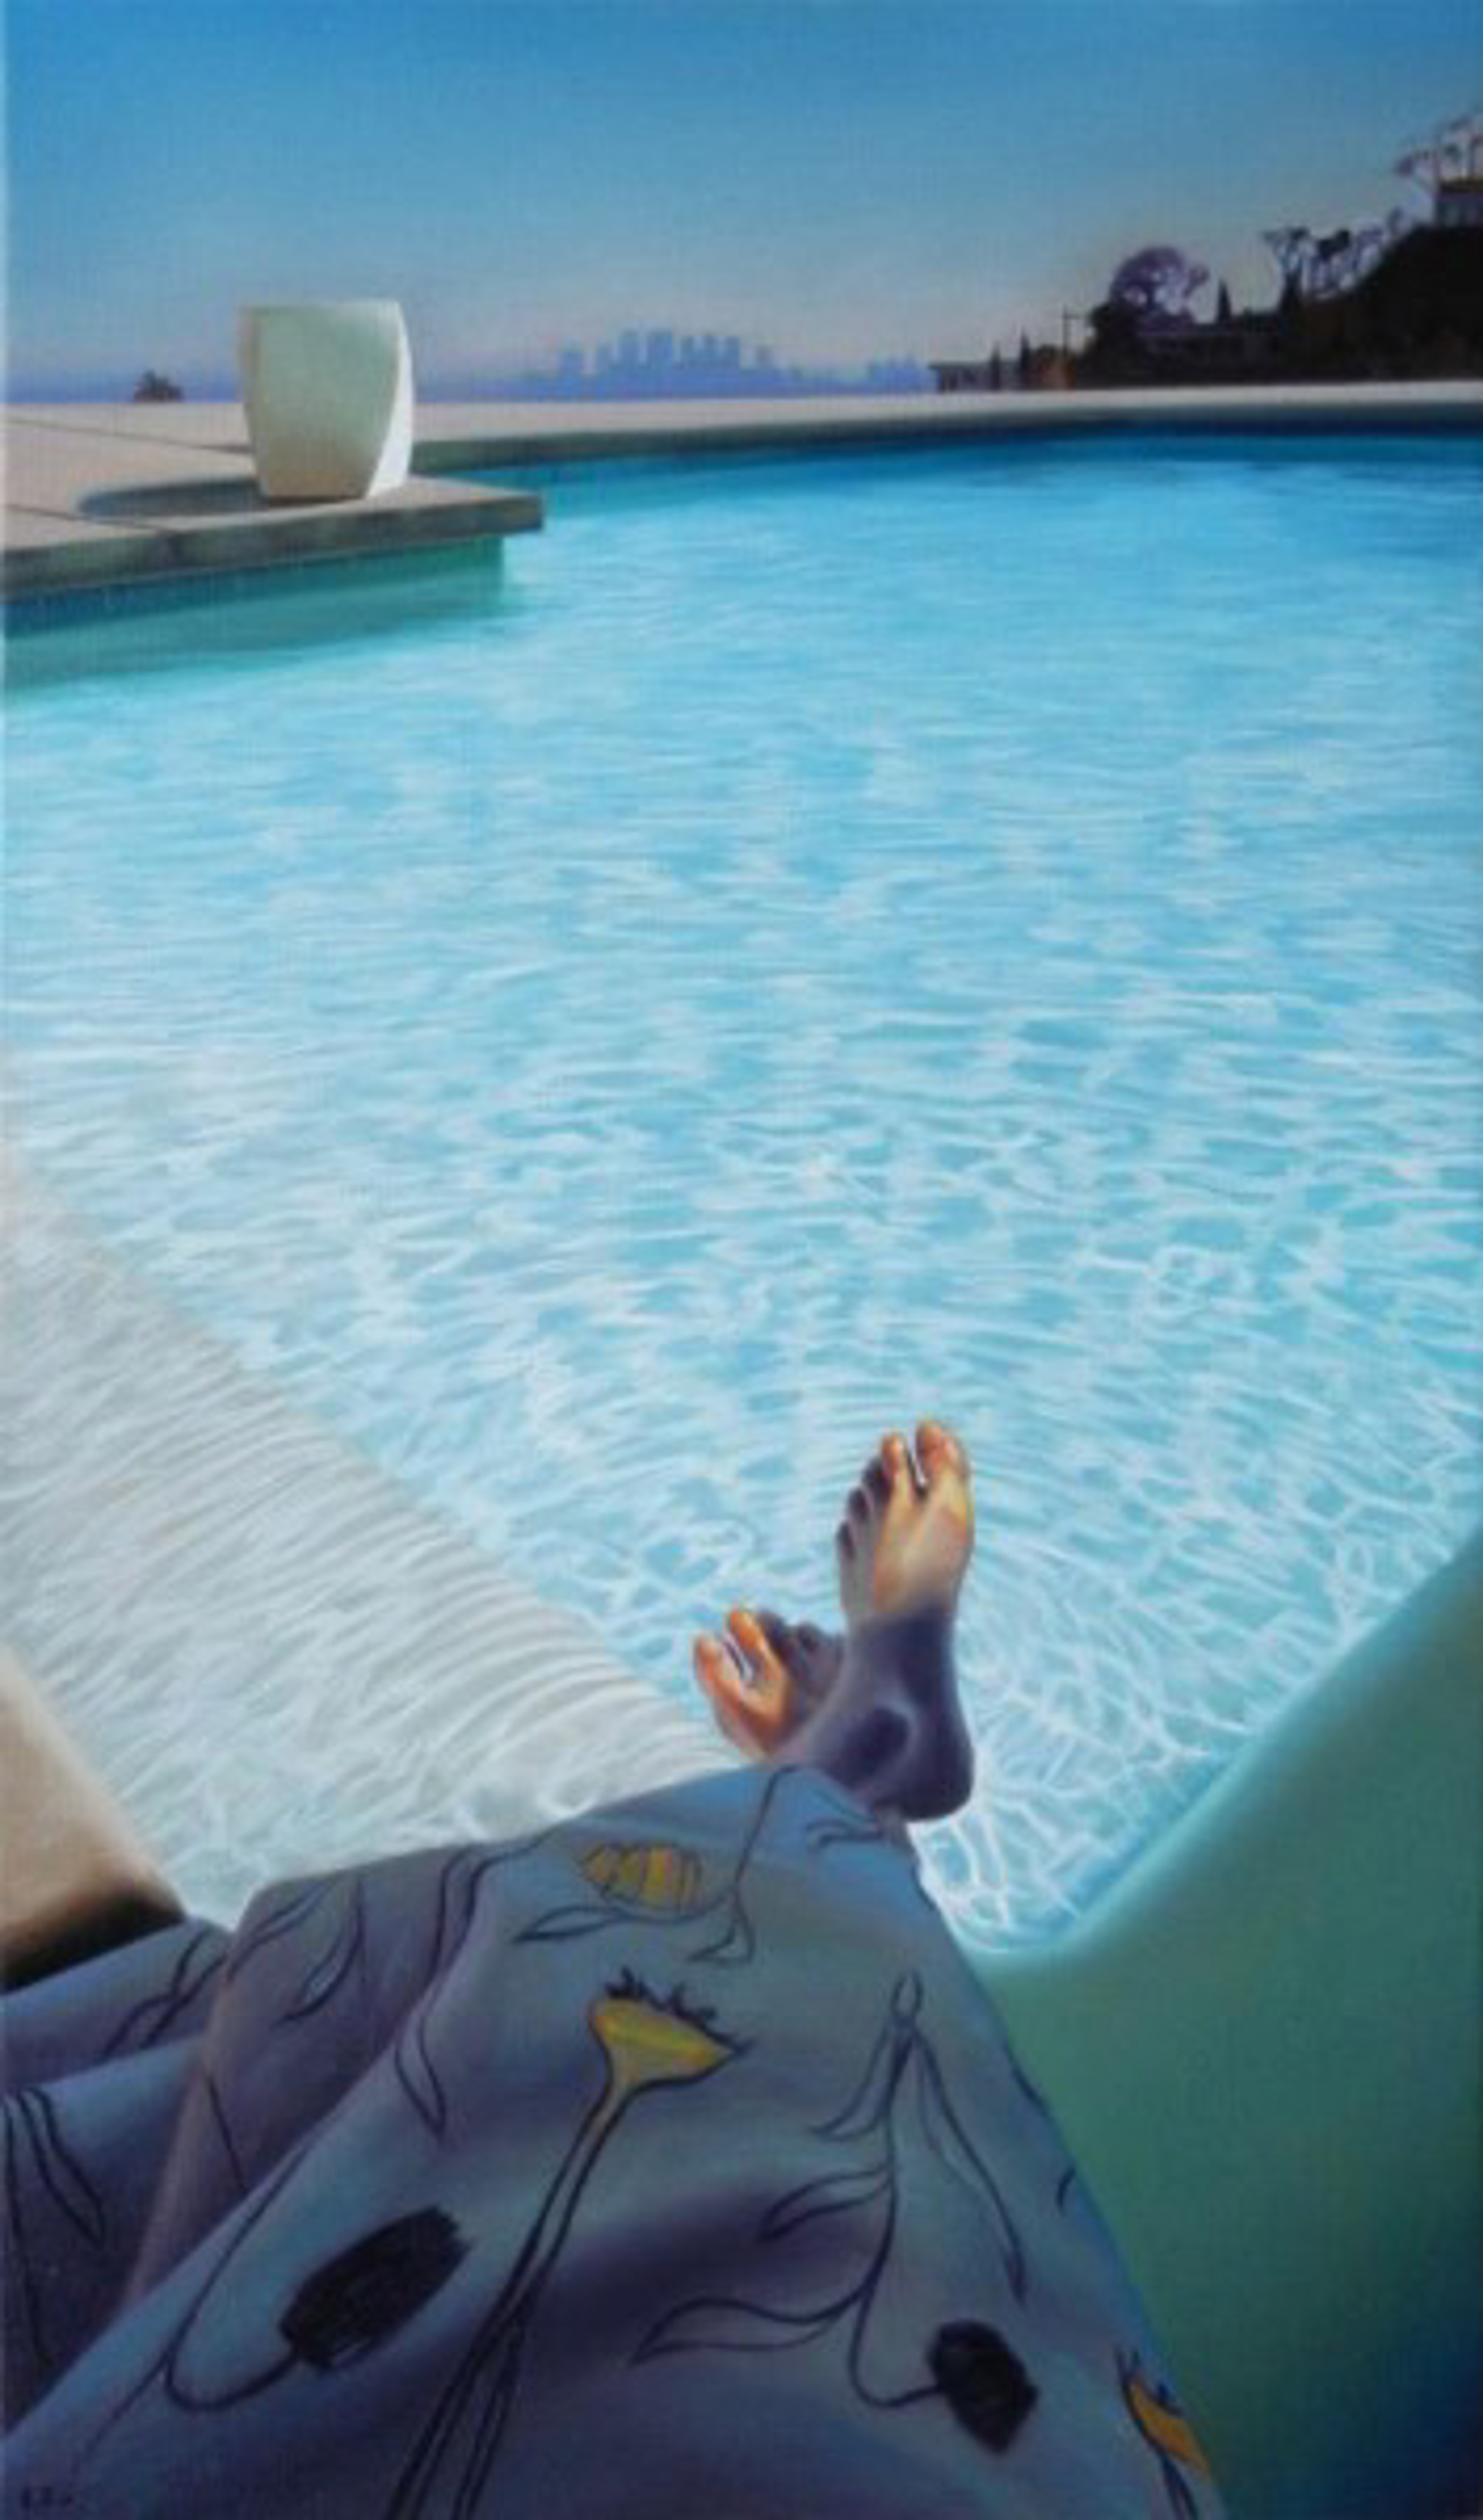 Stahl House Pool (S/N) by Carrie Graber